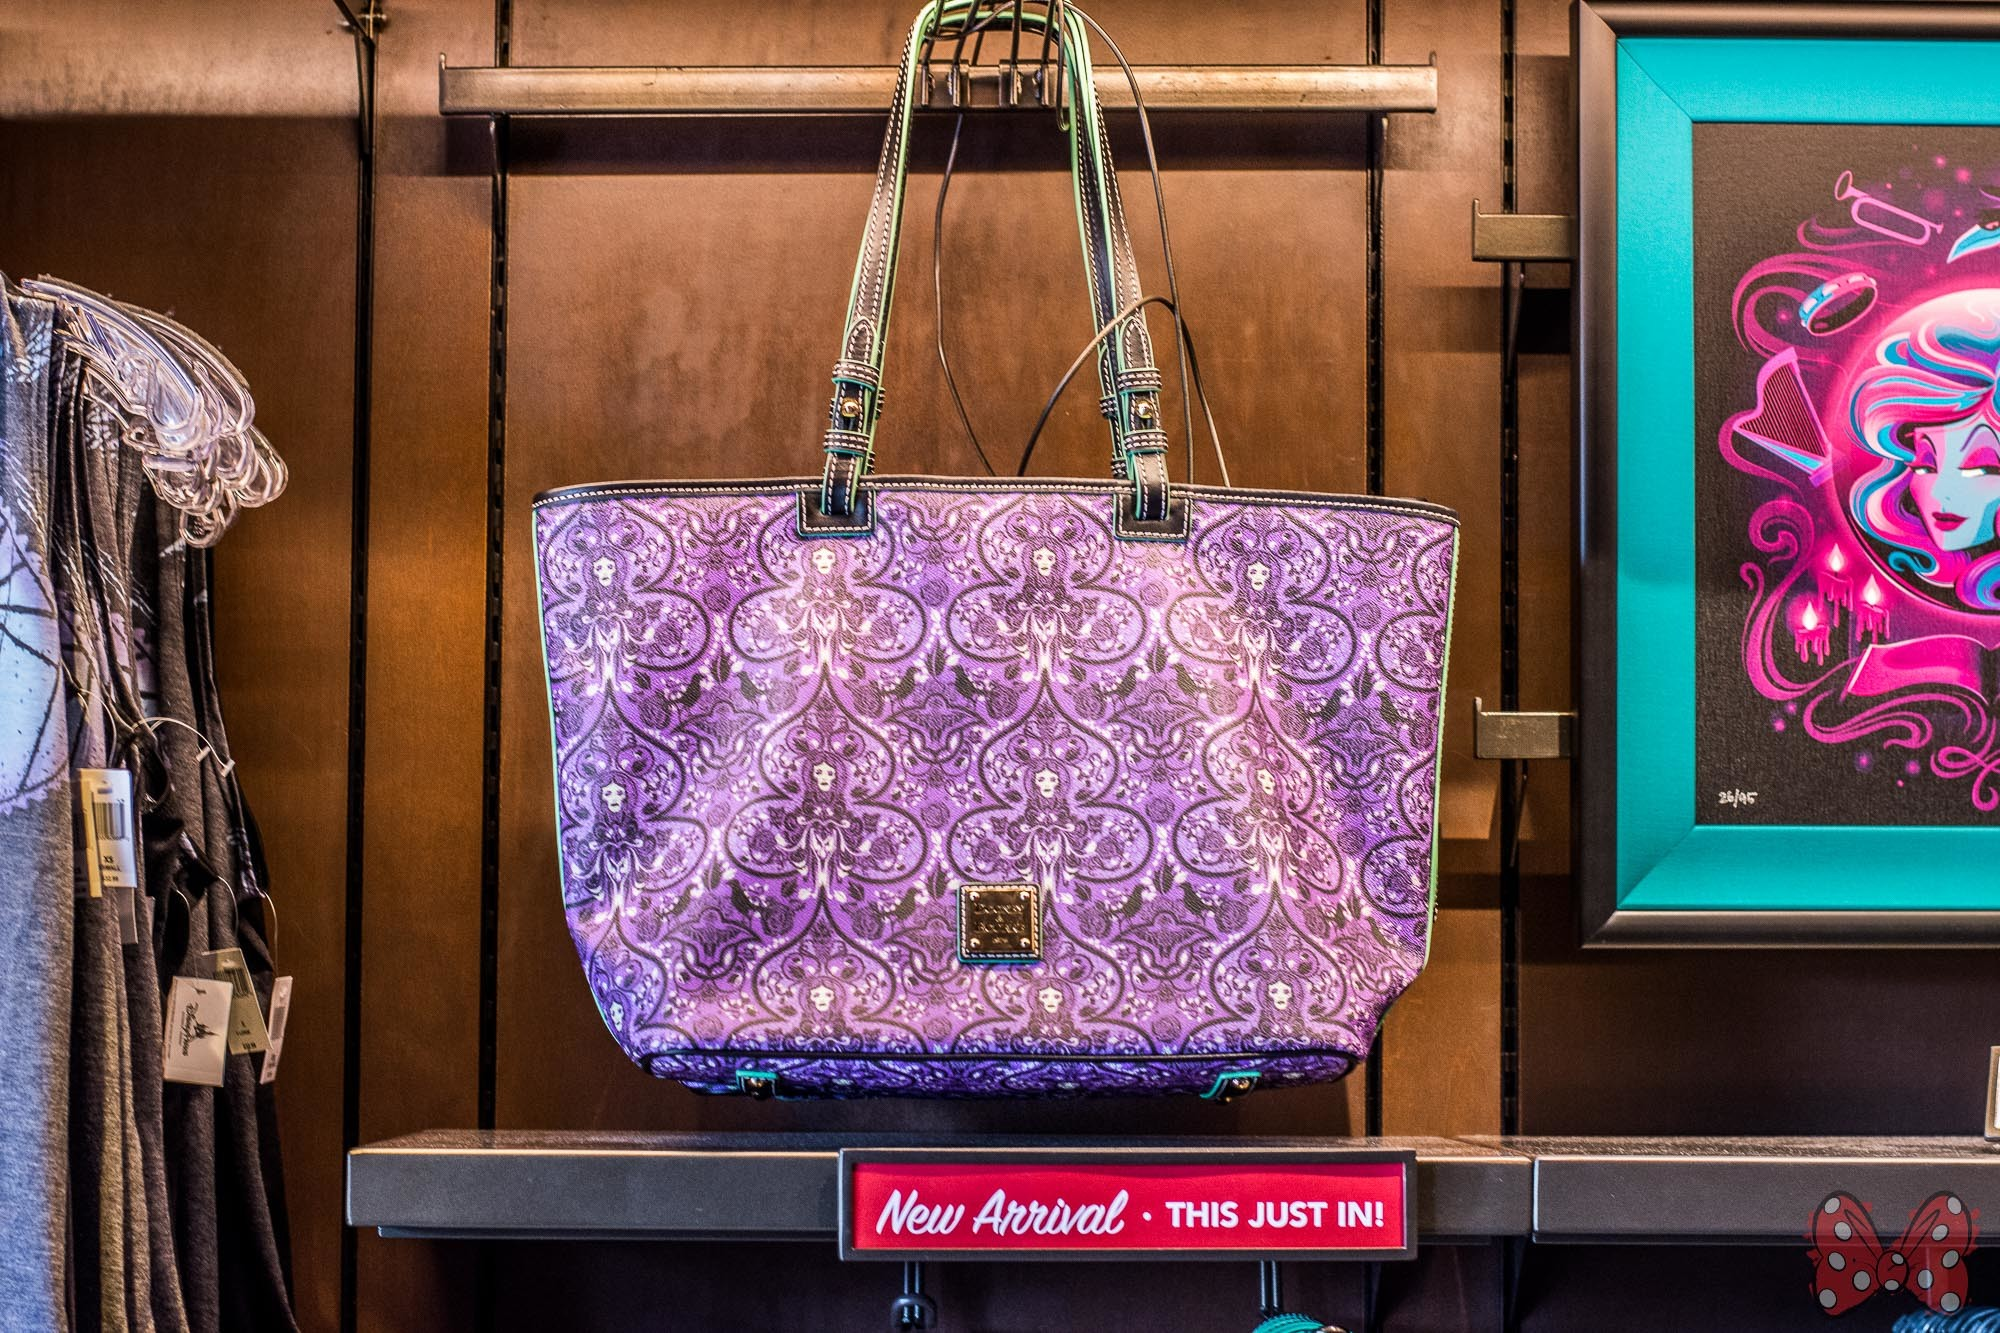 Next to the Madame Leota handbags, you will find the Haunted Mansion  Wallpaper handbags and matching Haunted Mansion Wallpaper Tank ($36.99).